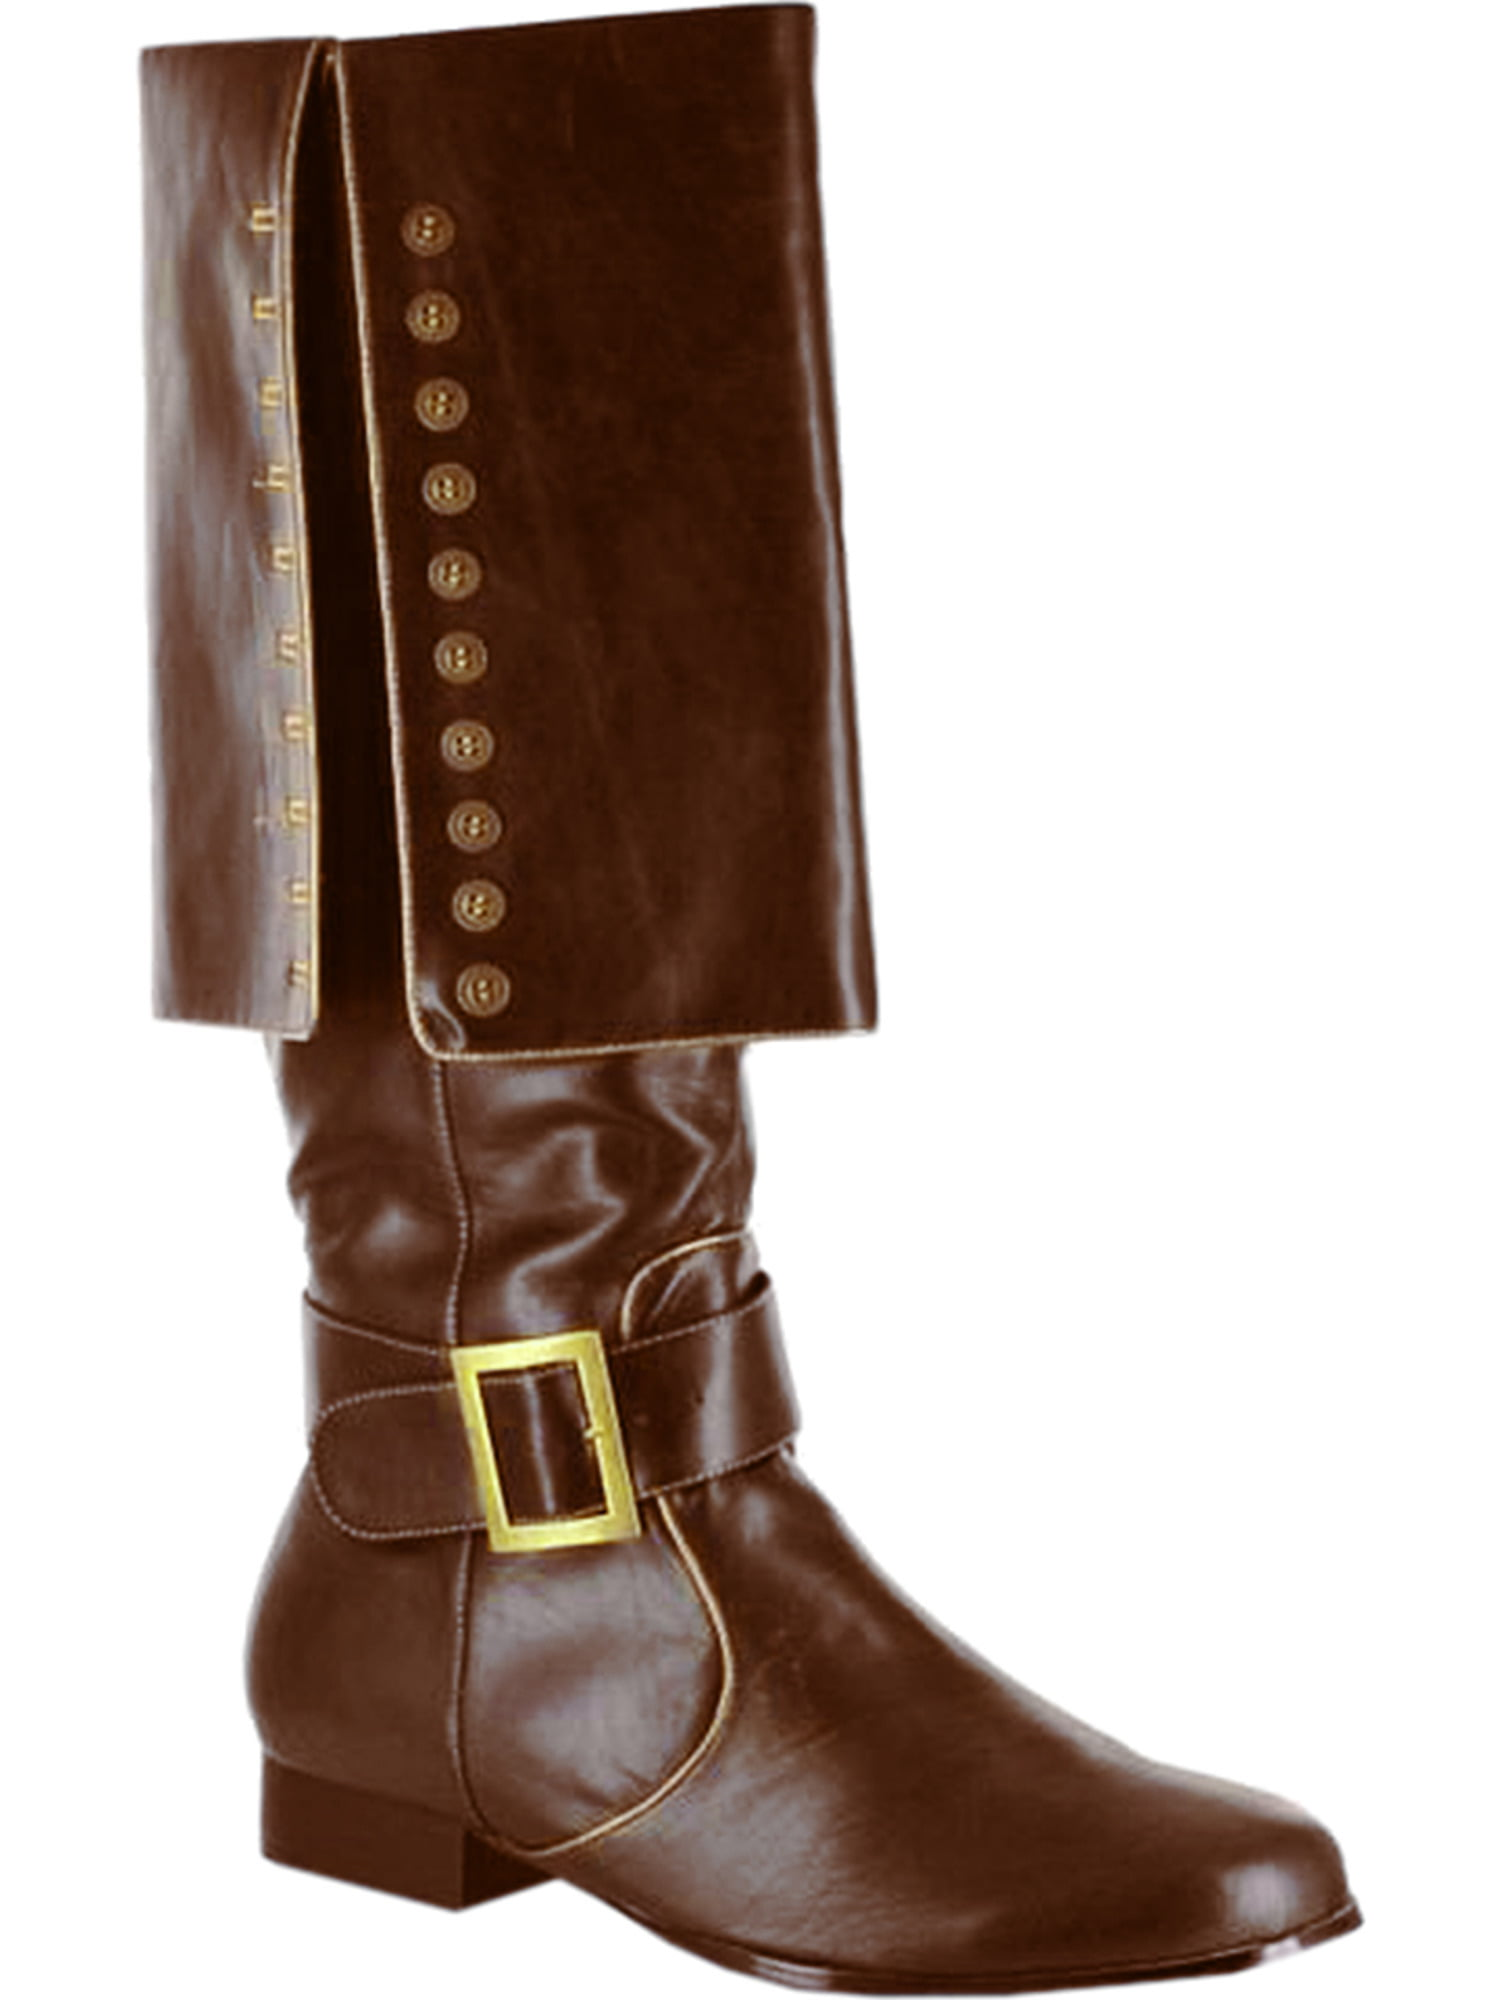 MENS SIZING 1 Inch Heel Pirate Boots Knee High With Studded Cuff